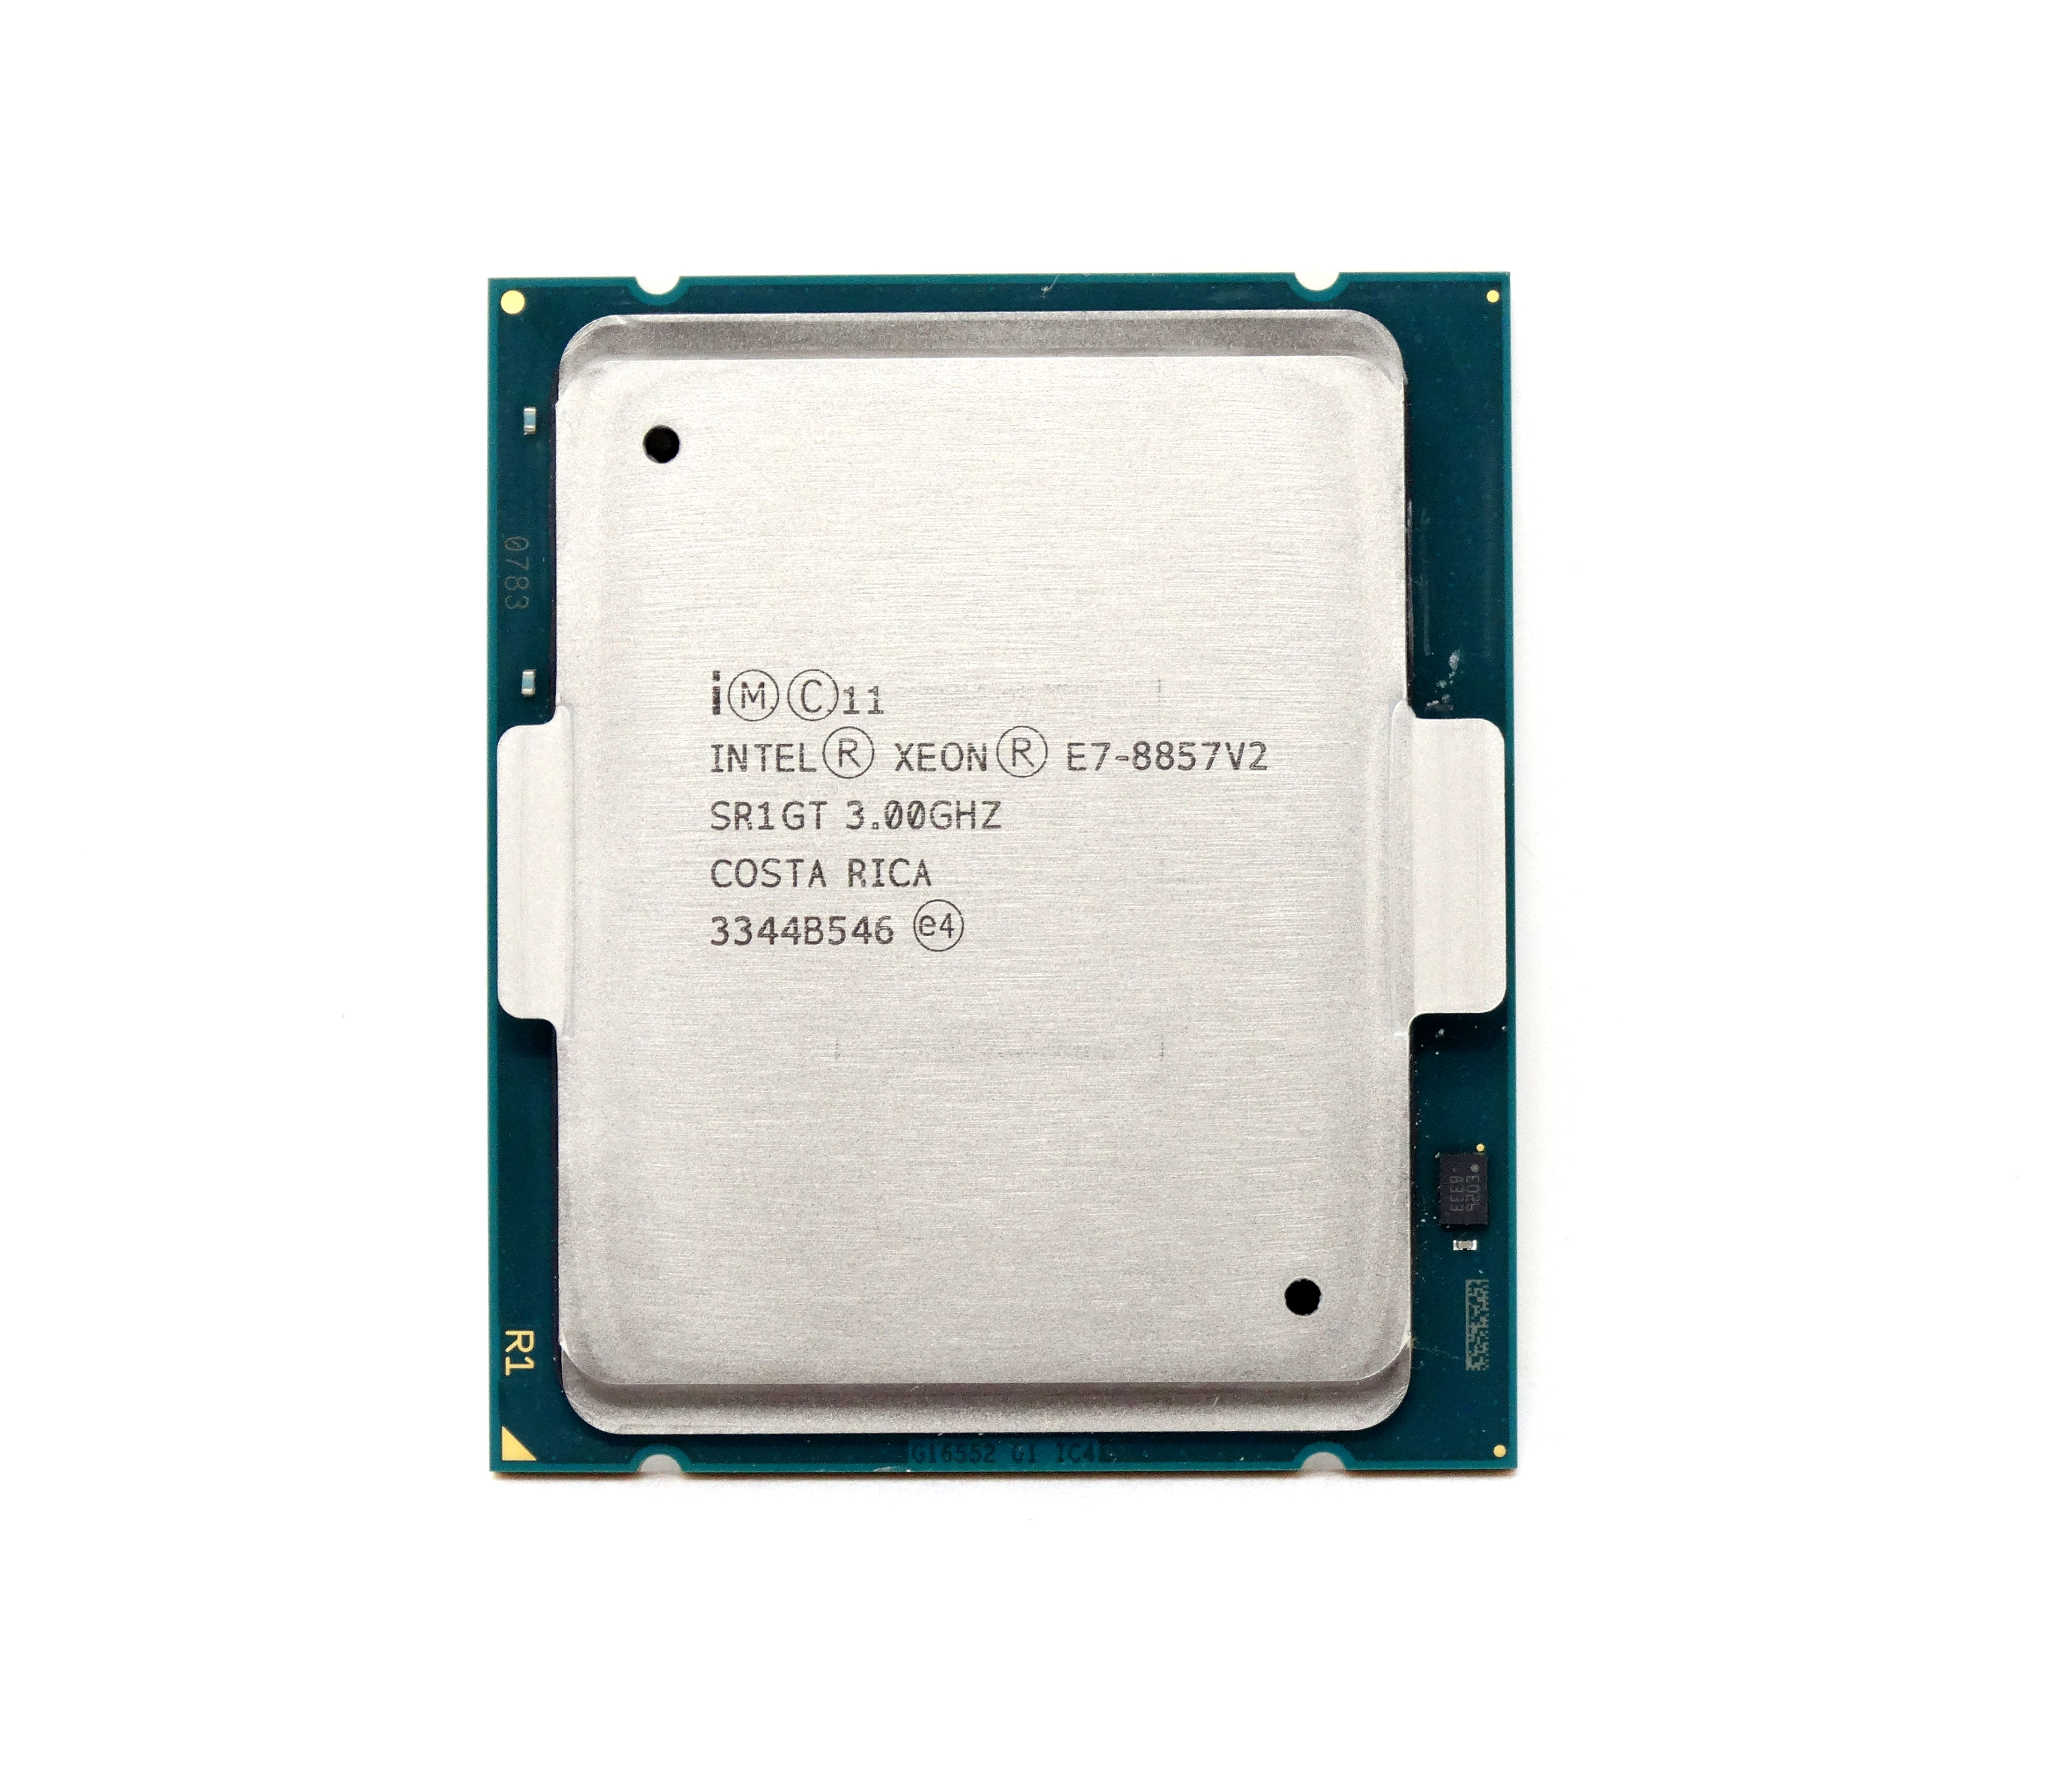 Intel Xeon E7-8857v2 12-Core 3.00GHz 8GT/s 30MB LGA2011 CPU Processor (SR1GT)